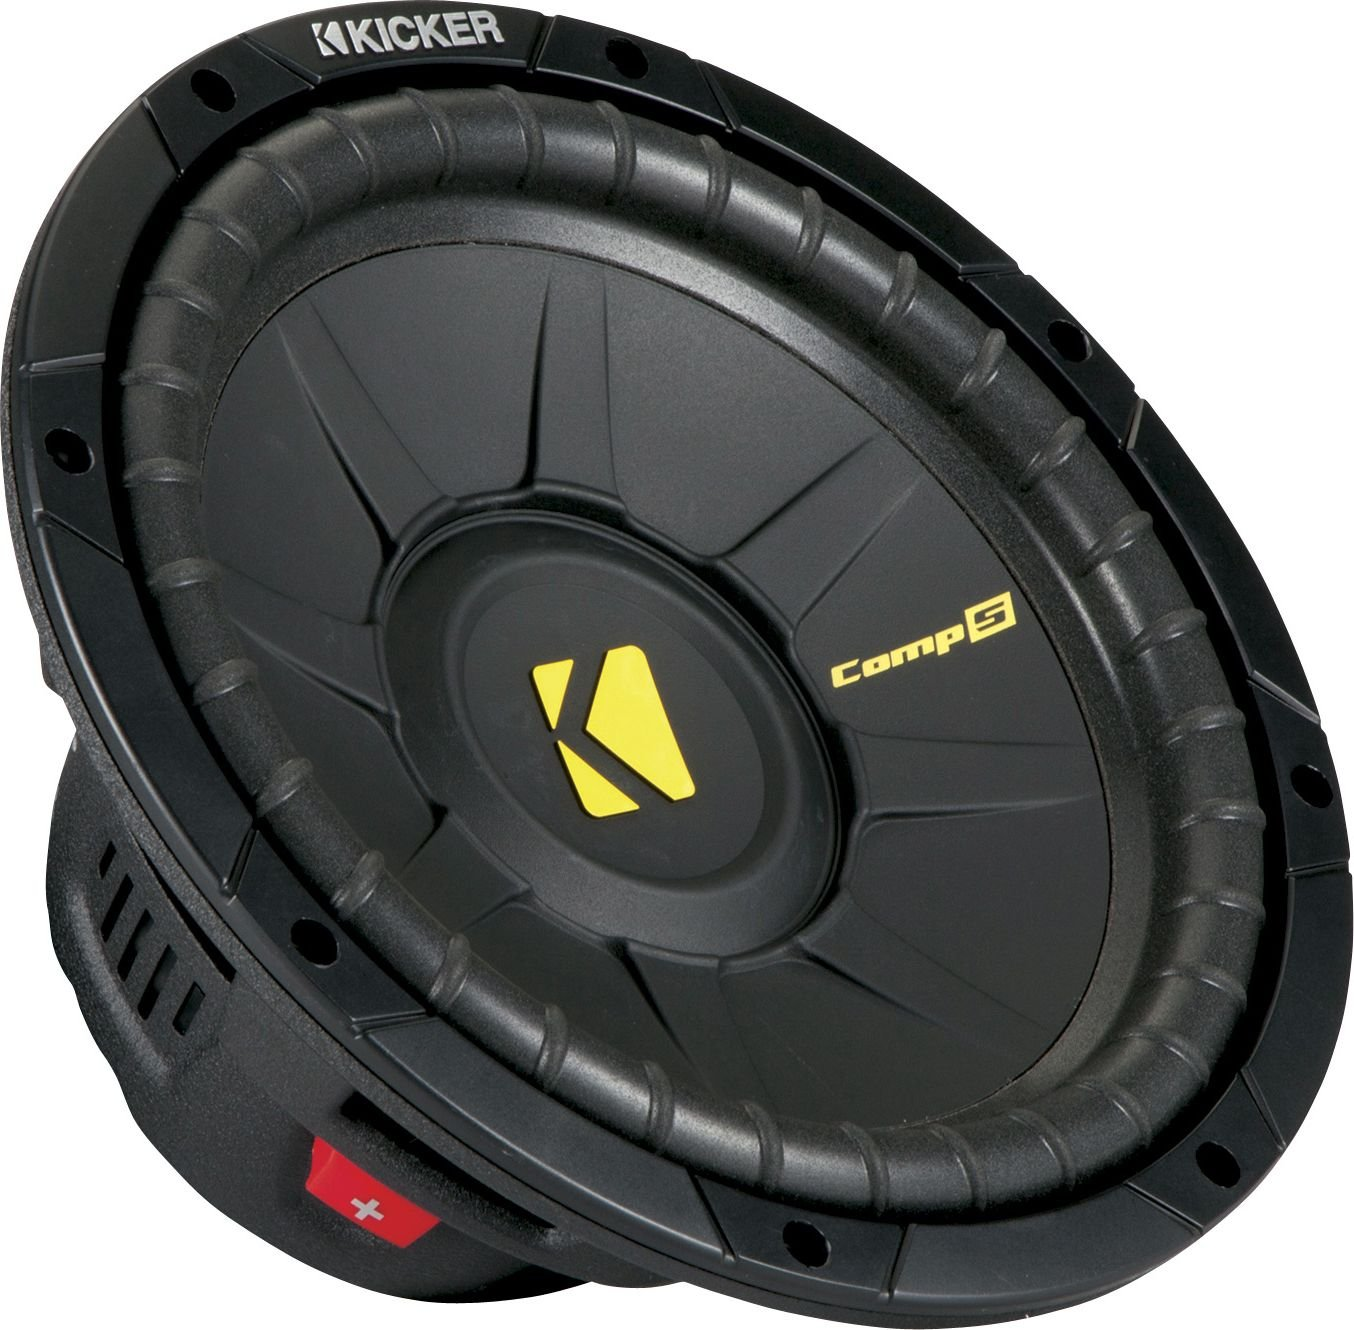 Kicker Comps 10-Inch 600-Watt Subwoofer by Kicker